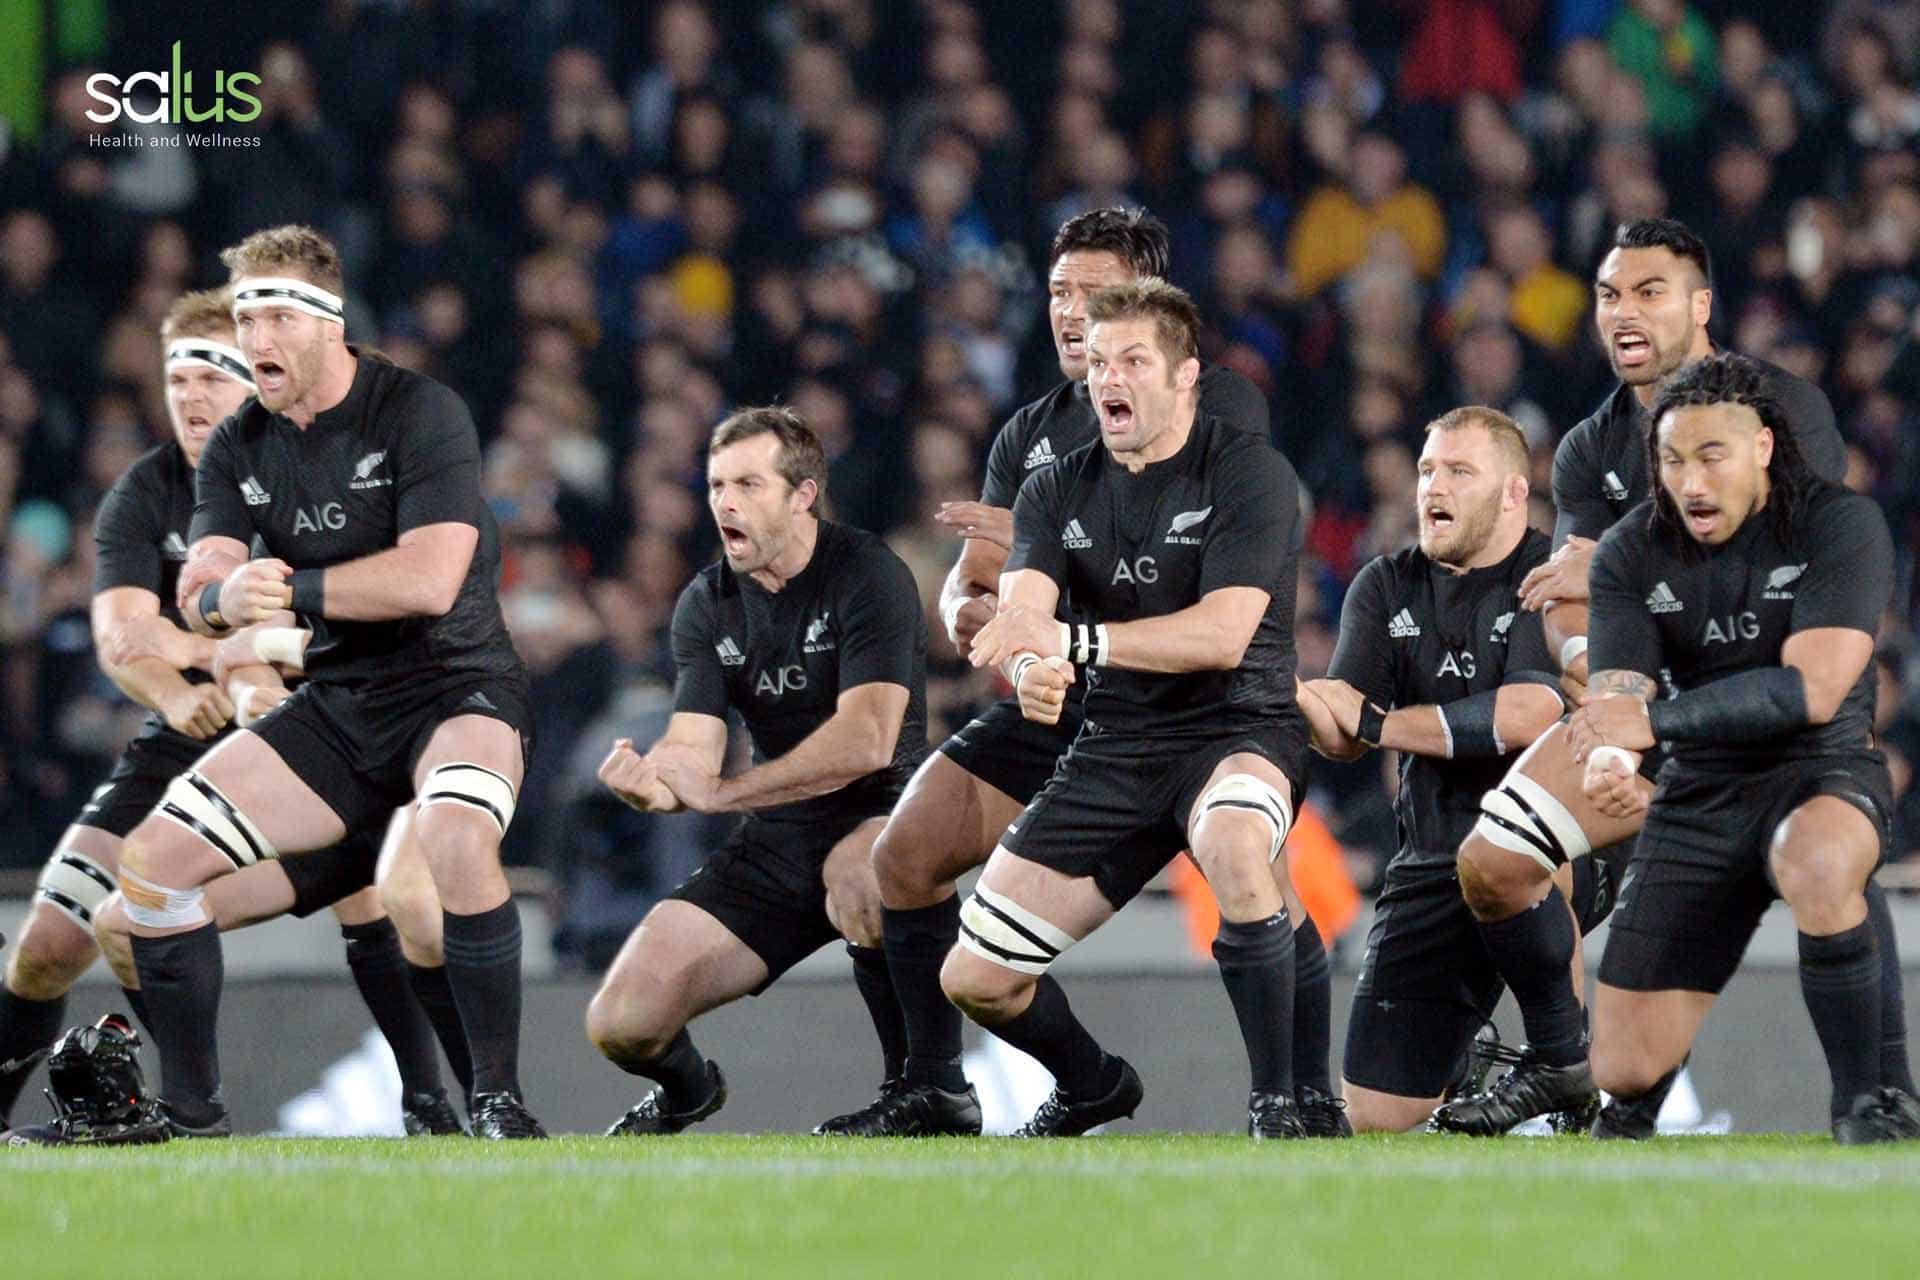 Salus blog - Danza All blacks